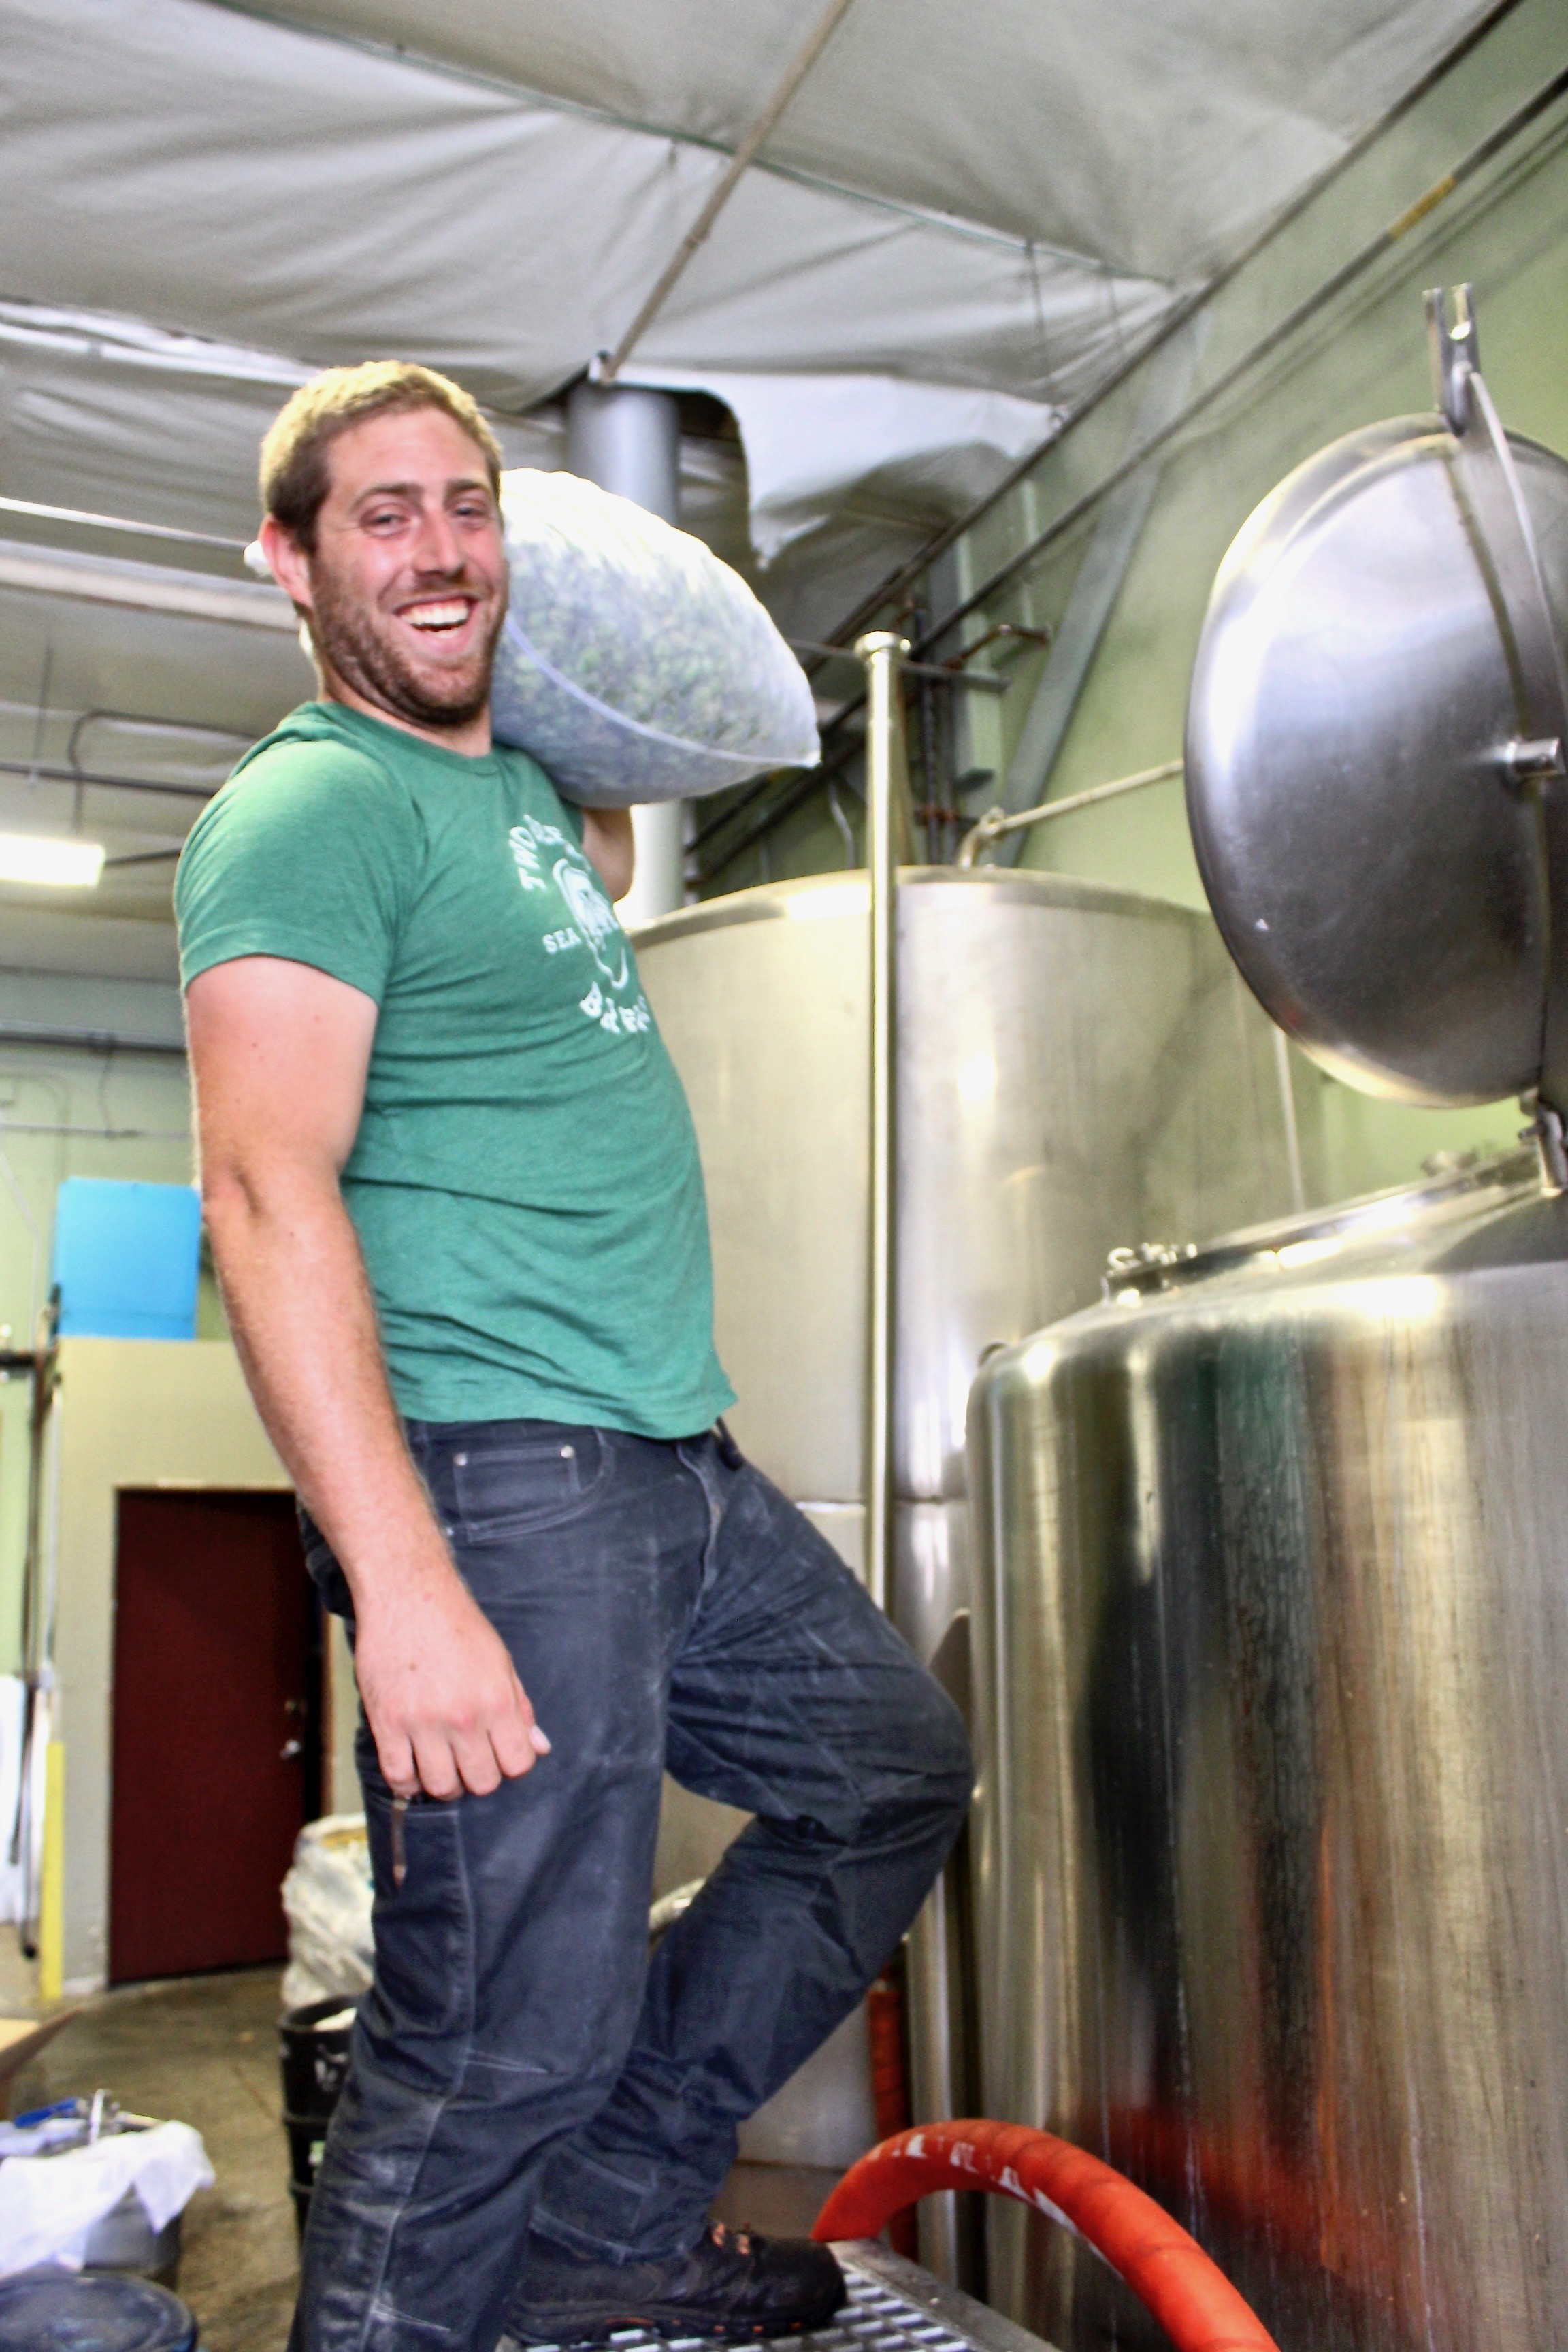 Two Beers Brewing's Head Brewer, Jesse Ransavage, adding the Fresh Hops. (image courtesy of Two Beers Brewing Co.)